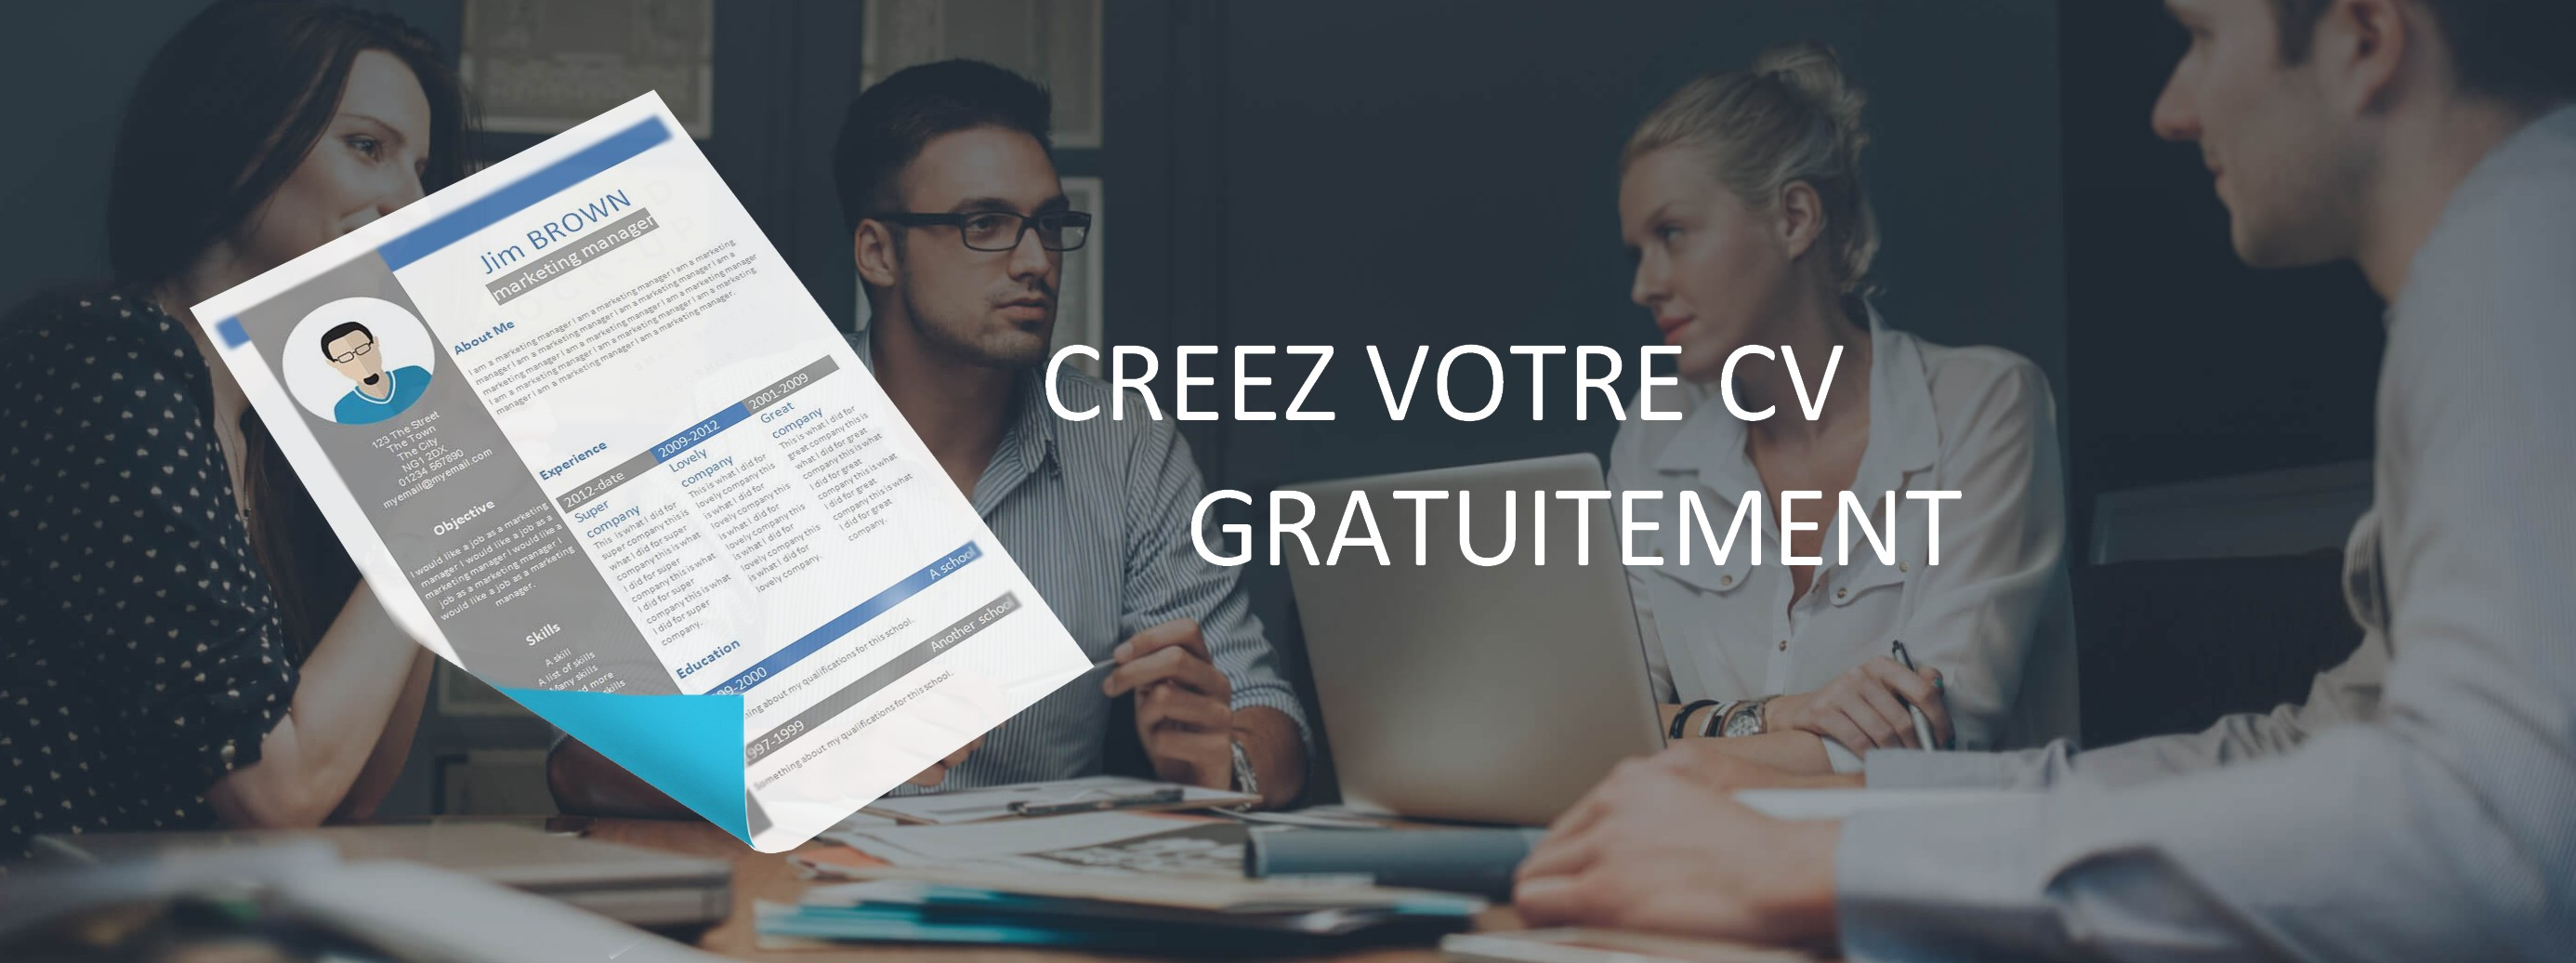 creation de cv en ligne